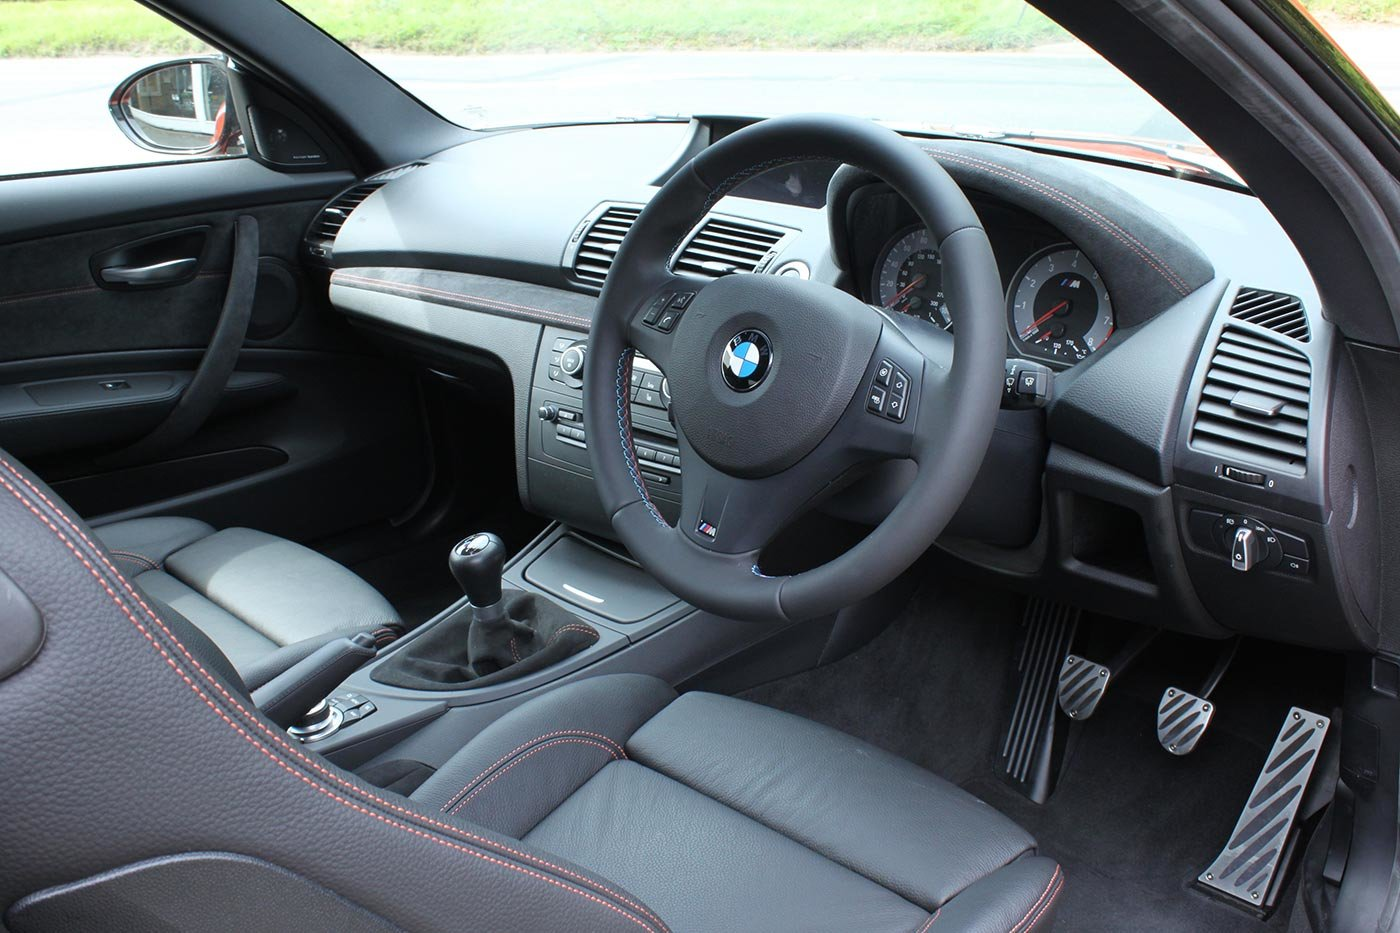 2011 BMW E82 1M Coupe For Sale (picture 3 of 6)